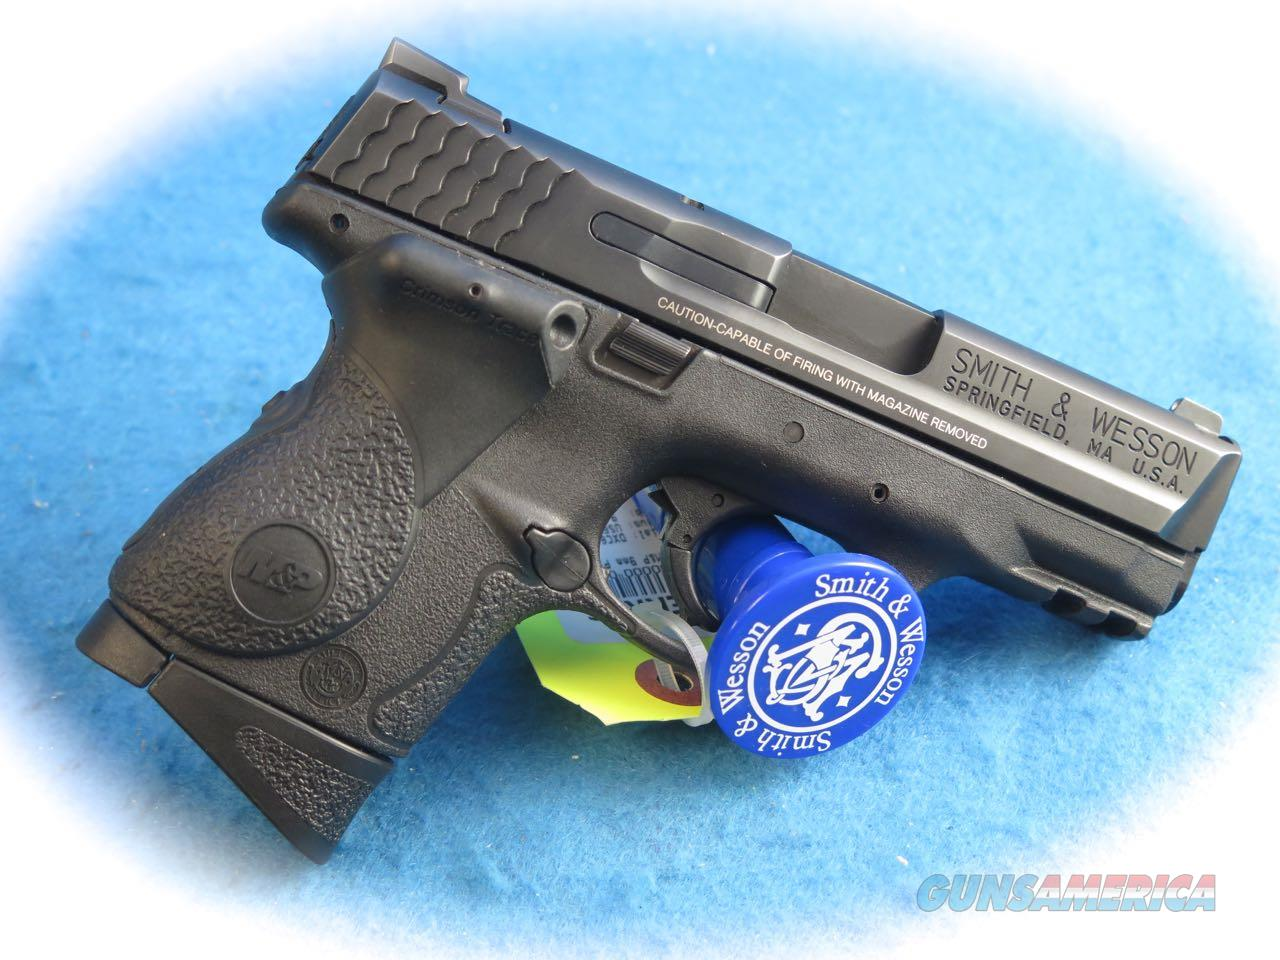 Smith & Wesson M&P9C w/CT Laser Grips 9mm Pistol **Used**  Guns > Pistols > Smith & Wesson Pistols - Autos > Polymer Frame